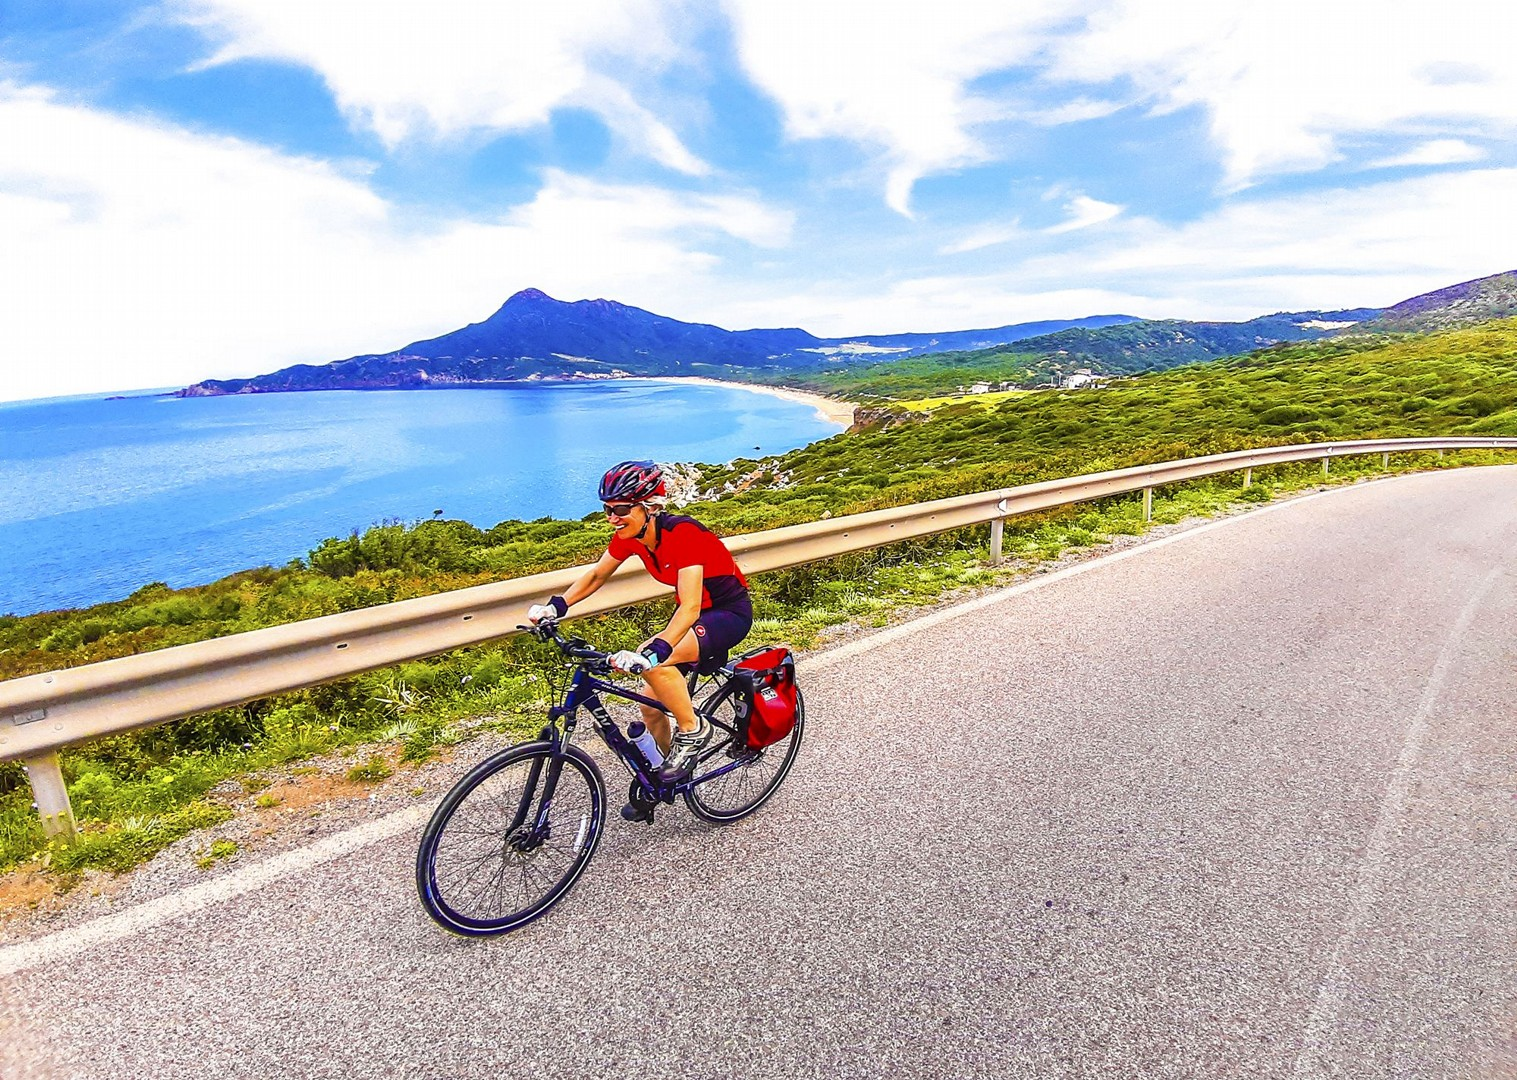 ddfsdf.jpg - Italy - Sardinia - Island Flavours - Guided Leisure Cycling Holiday - Leisure Cycling